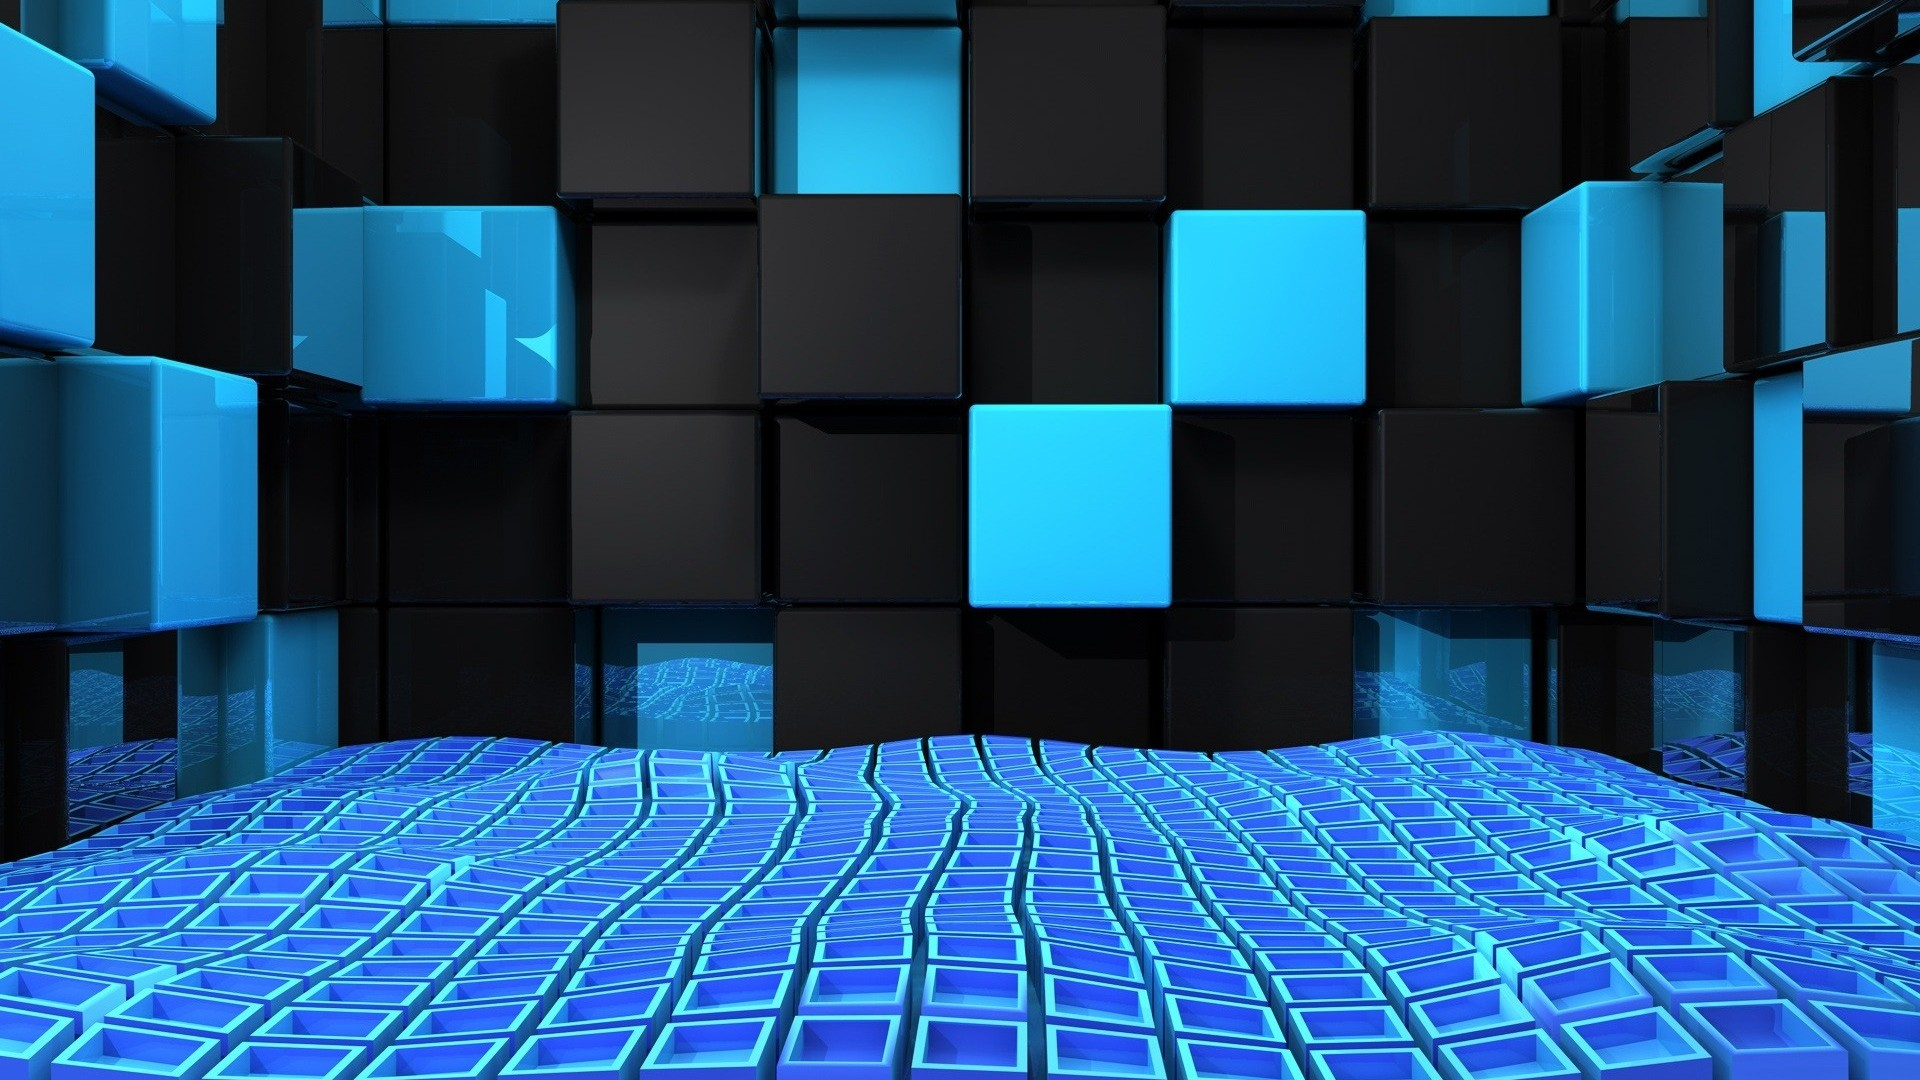 Preview wallpaper cube, squares, space, blue, black, weightlessness  1920×1080